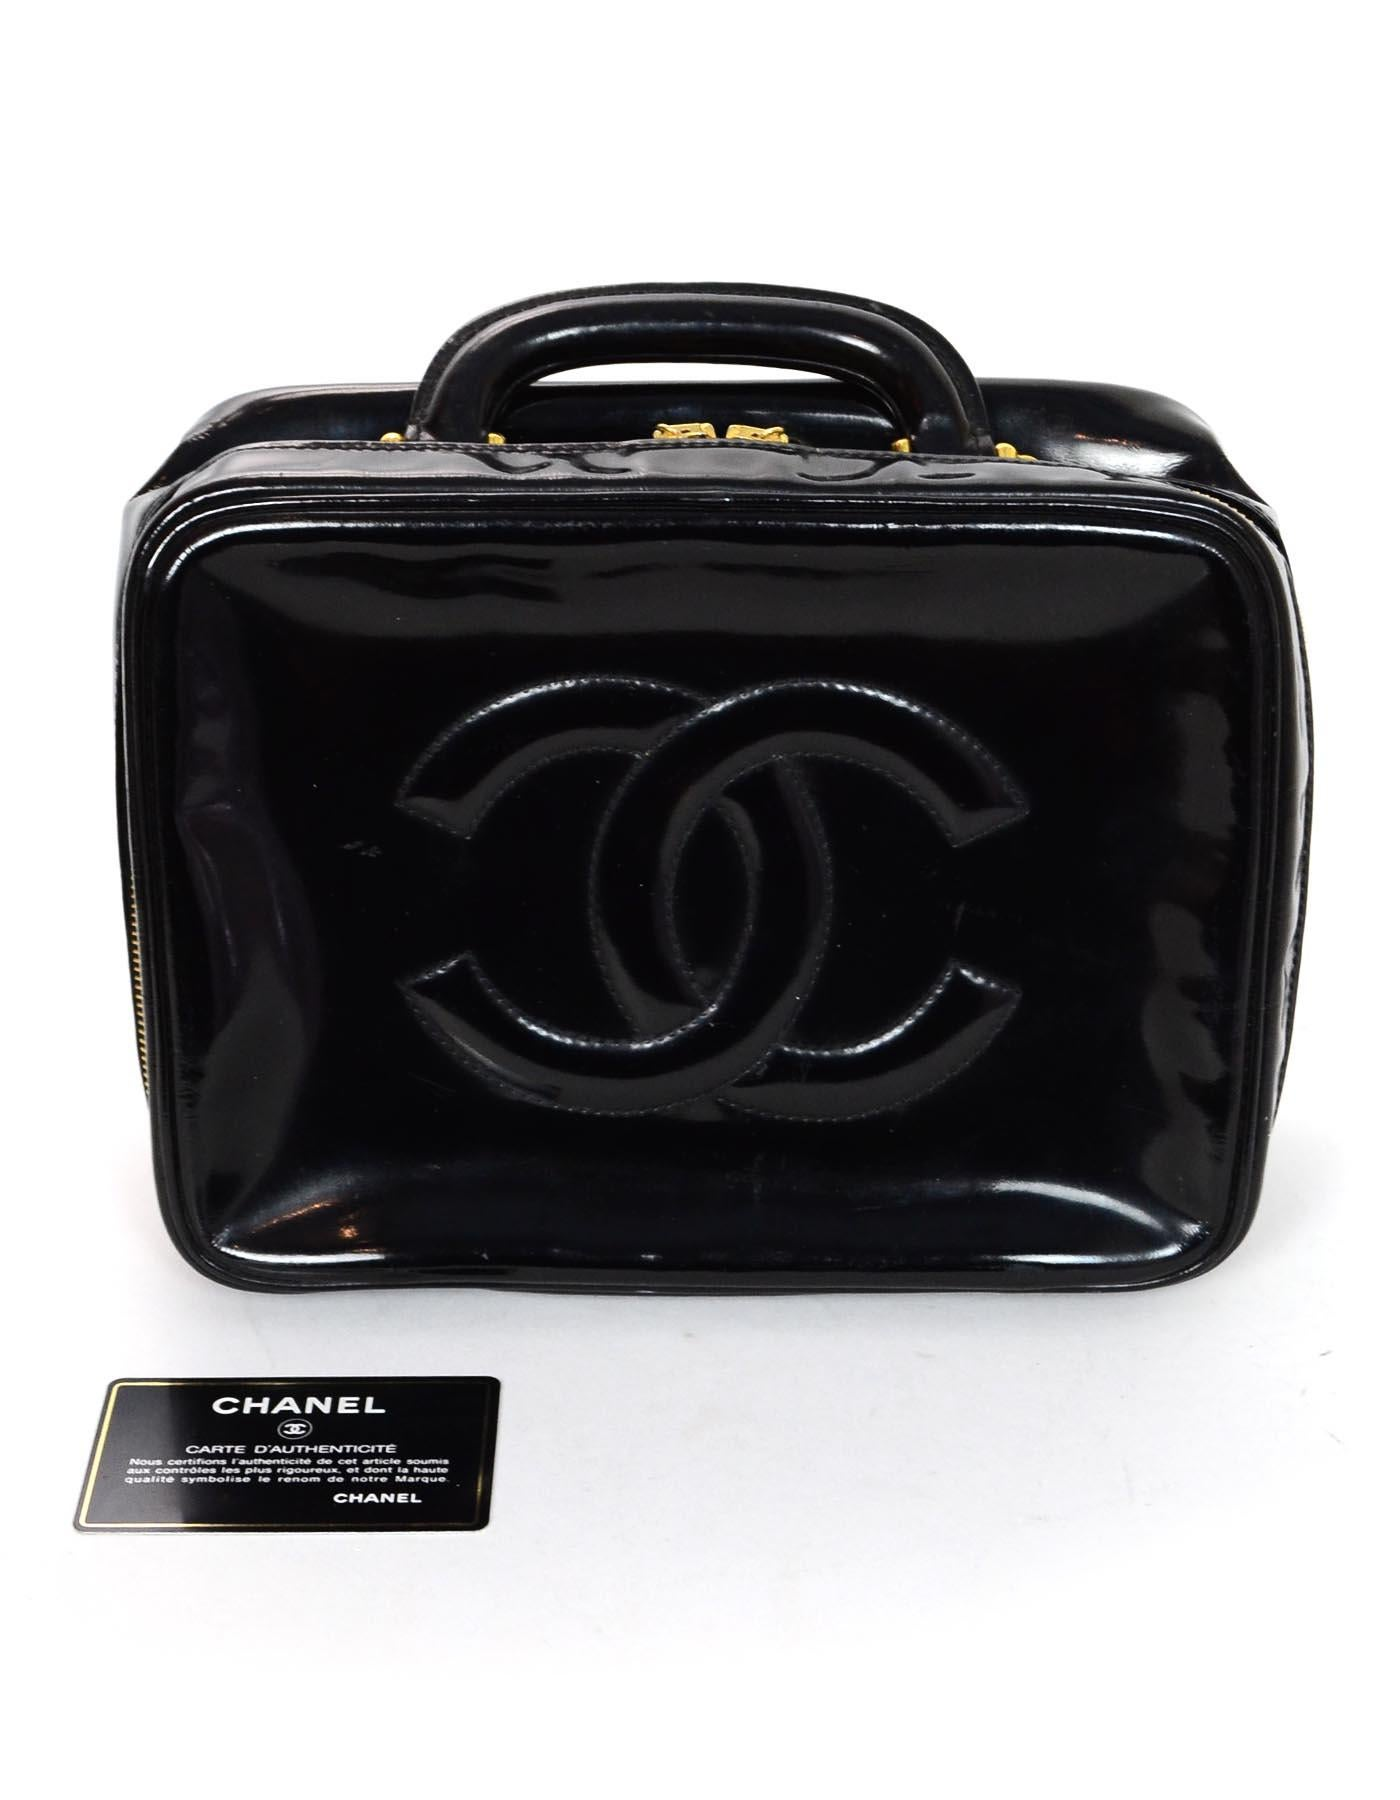 2d4e17ae4cda Chanel Vintage 90s Black Patent Leather Timeless CC Vanity Case Bag at  1stdibs